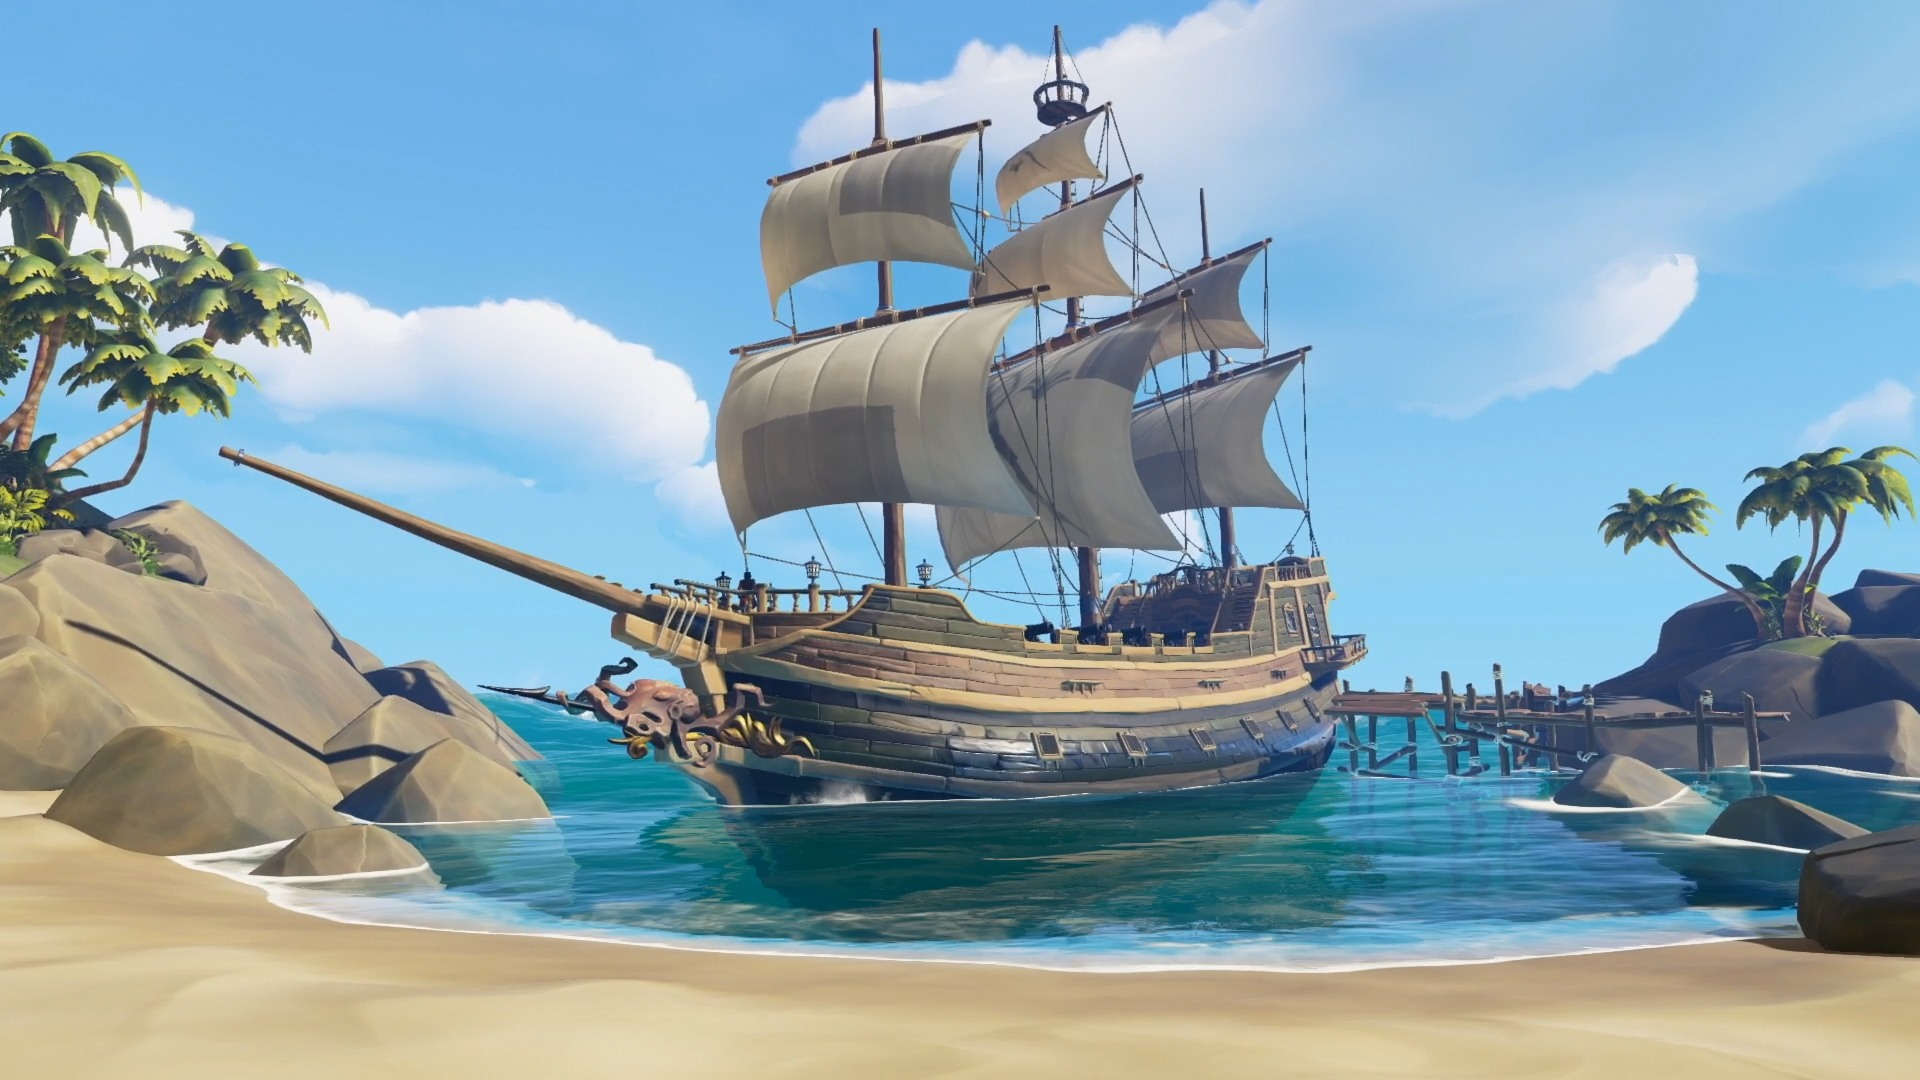 thieves of the sea Sea of thieves is a pirate-themed action-adventure cooperative multiplayer game played from a first-person perspective the game features cross-platform play between windows-based personal computers and xbox one video game consoles.